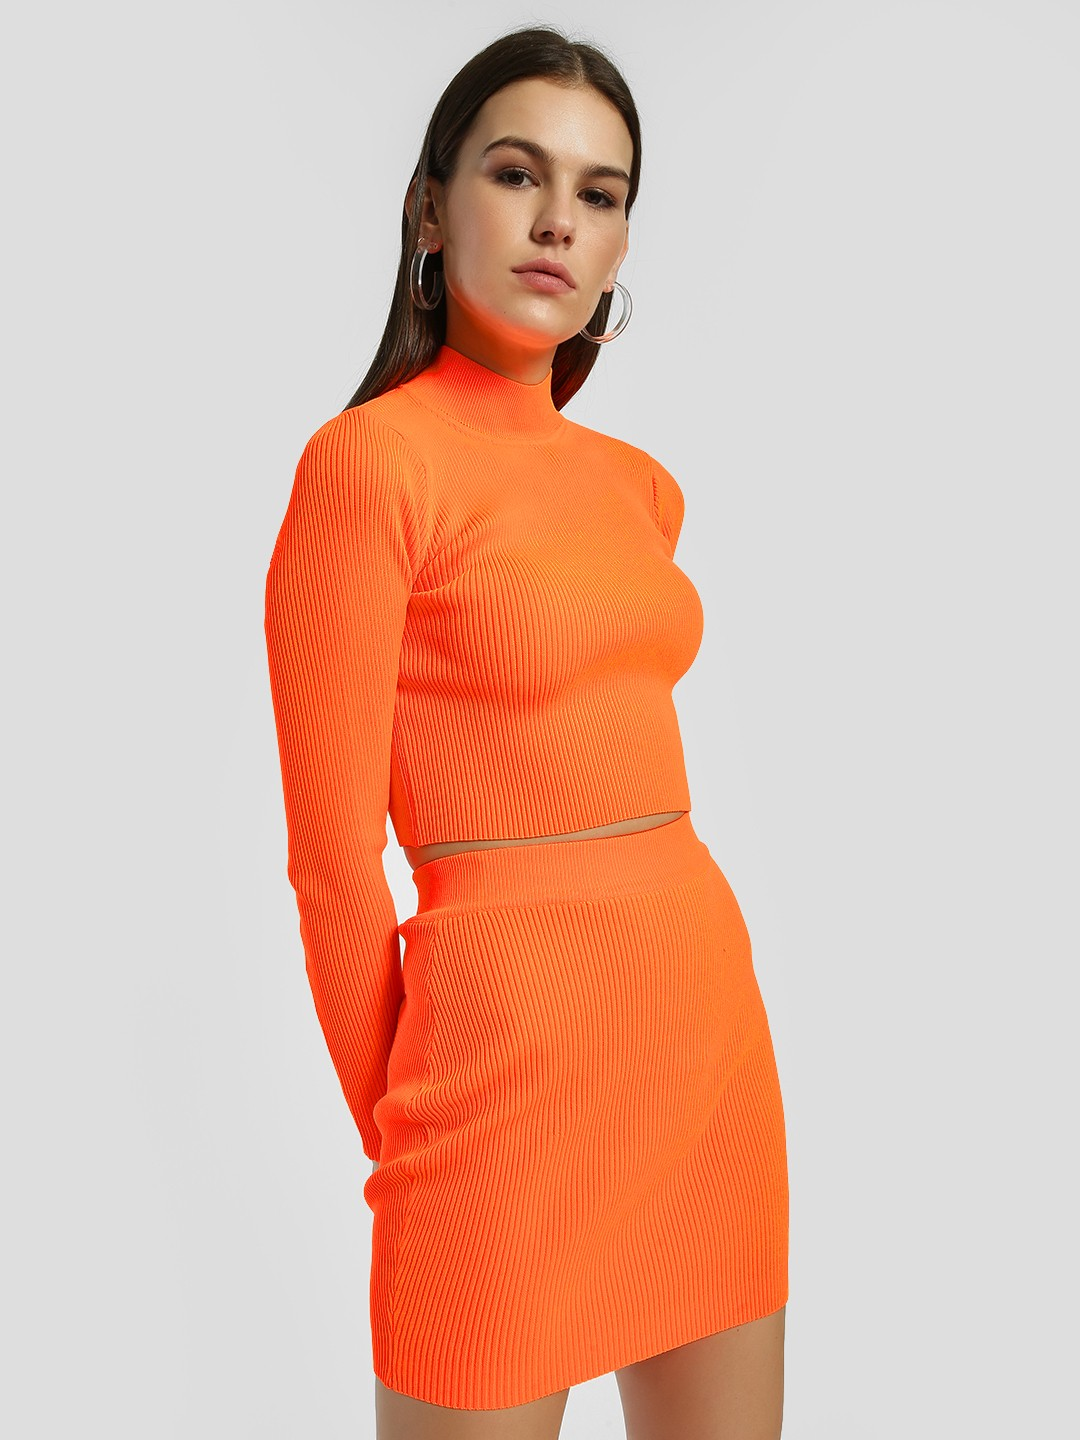 Miss Toxic Orange Ribbed Turtleneck Crop Top 1